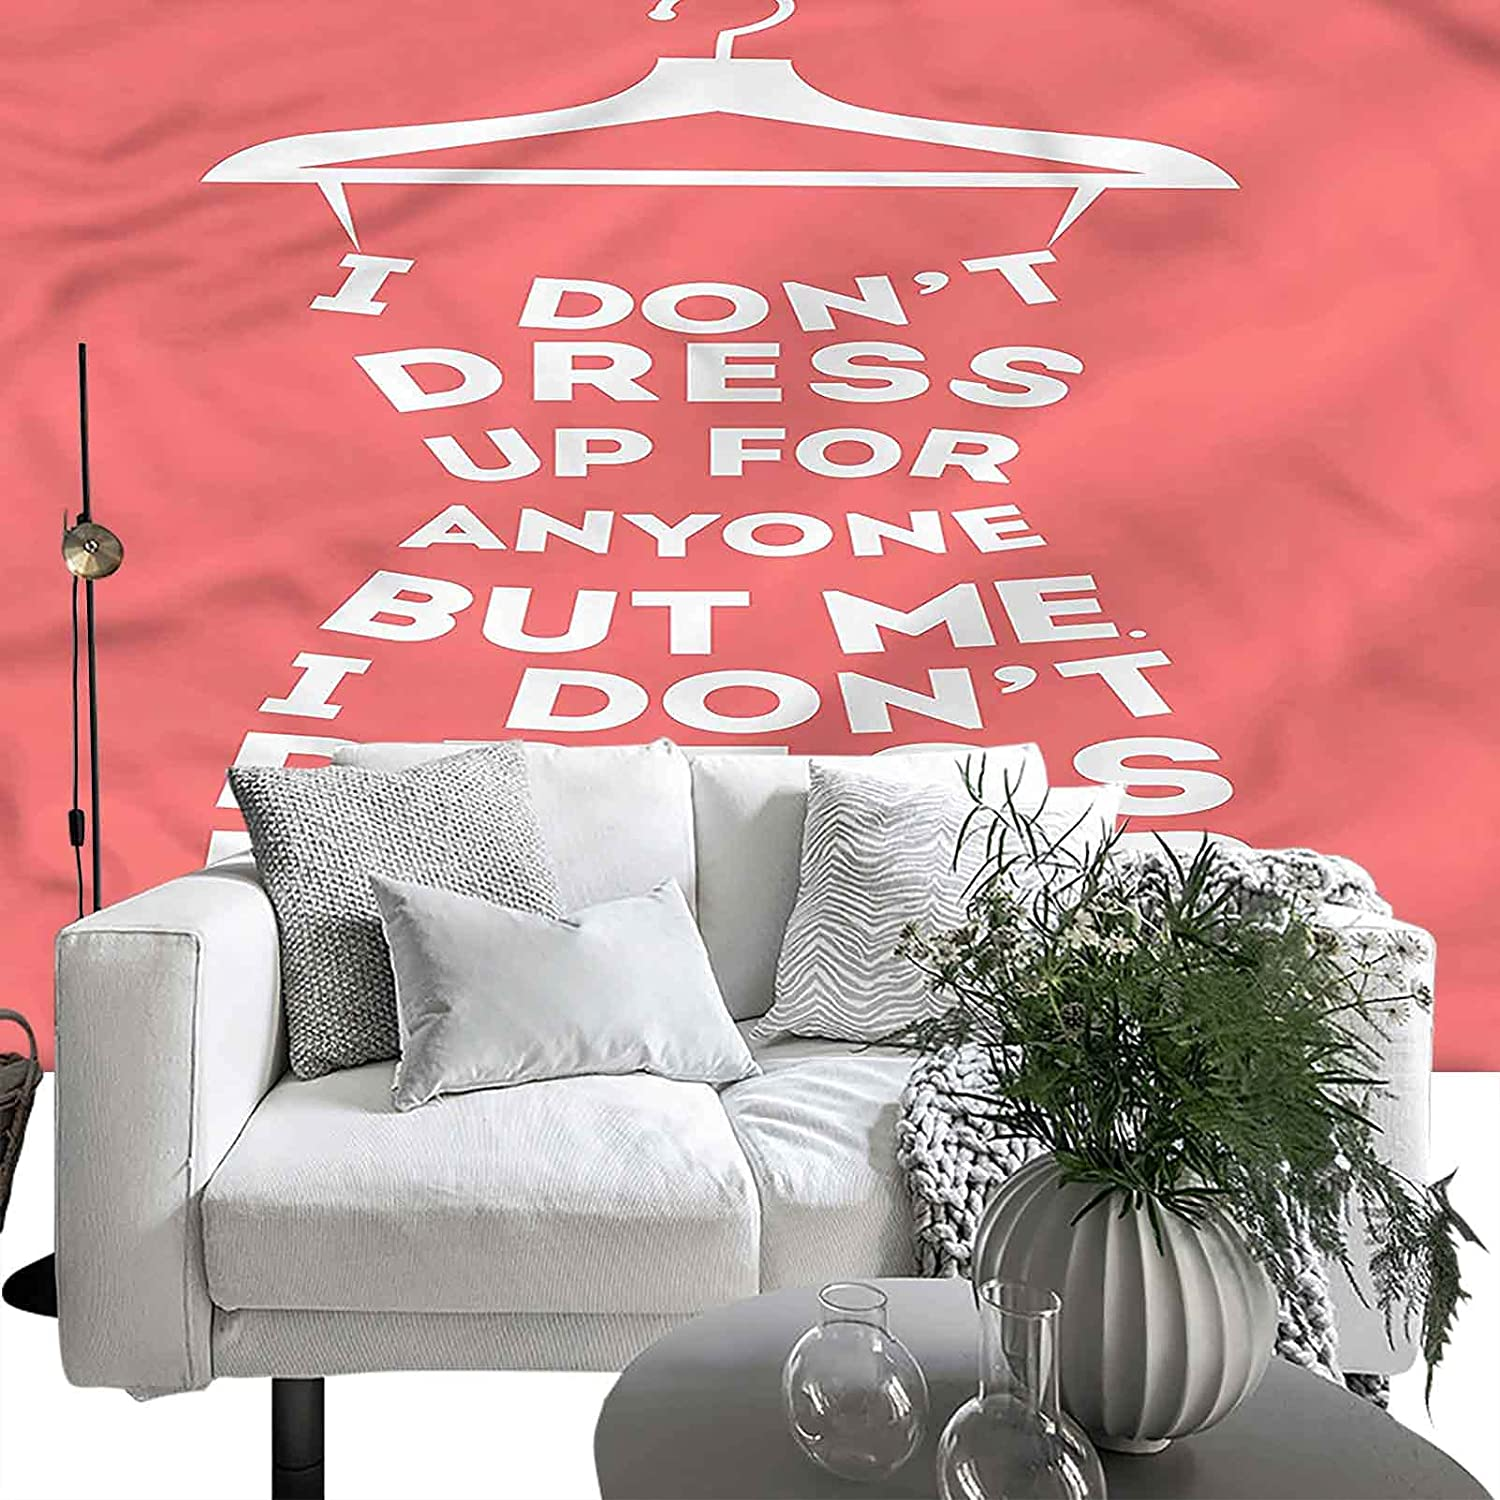 Wall Mural Quotes Lady Columbus Mall Dress Boutique Max 46% OFF Clothing inches Vi 100x144